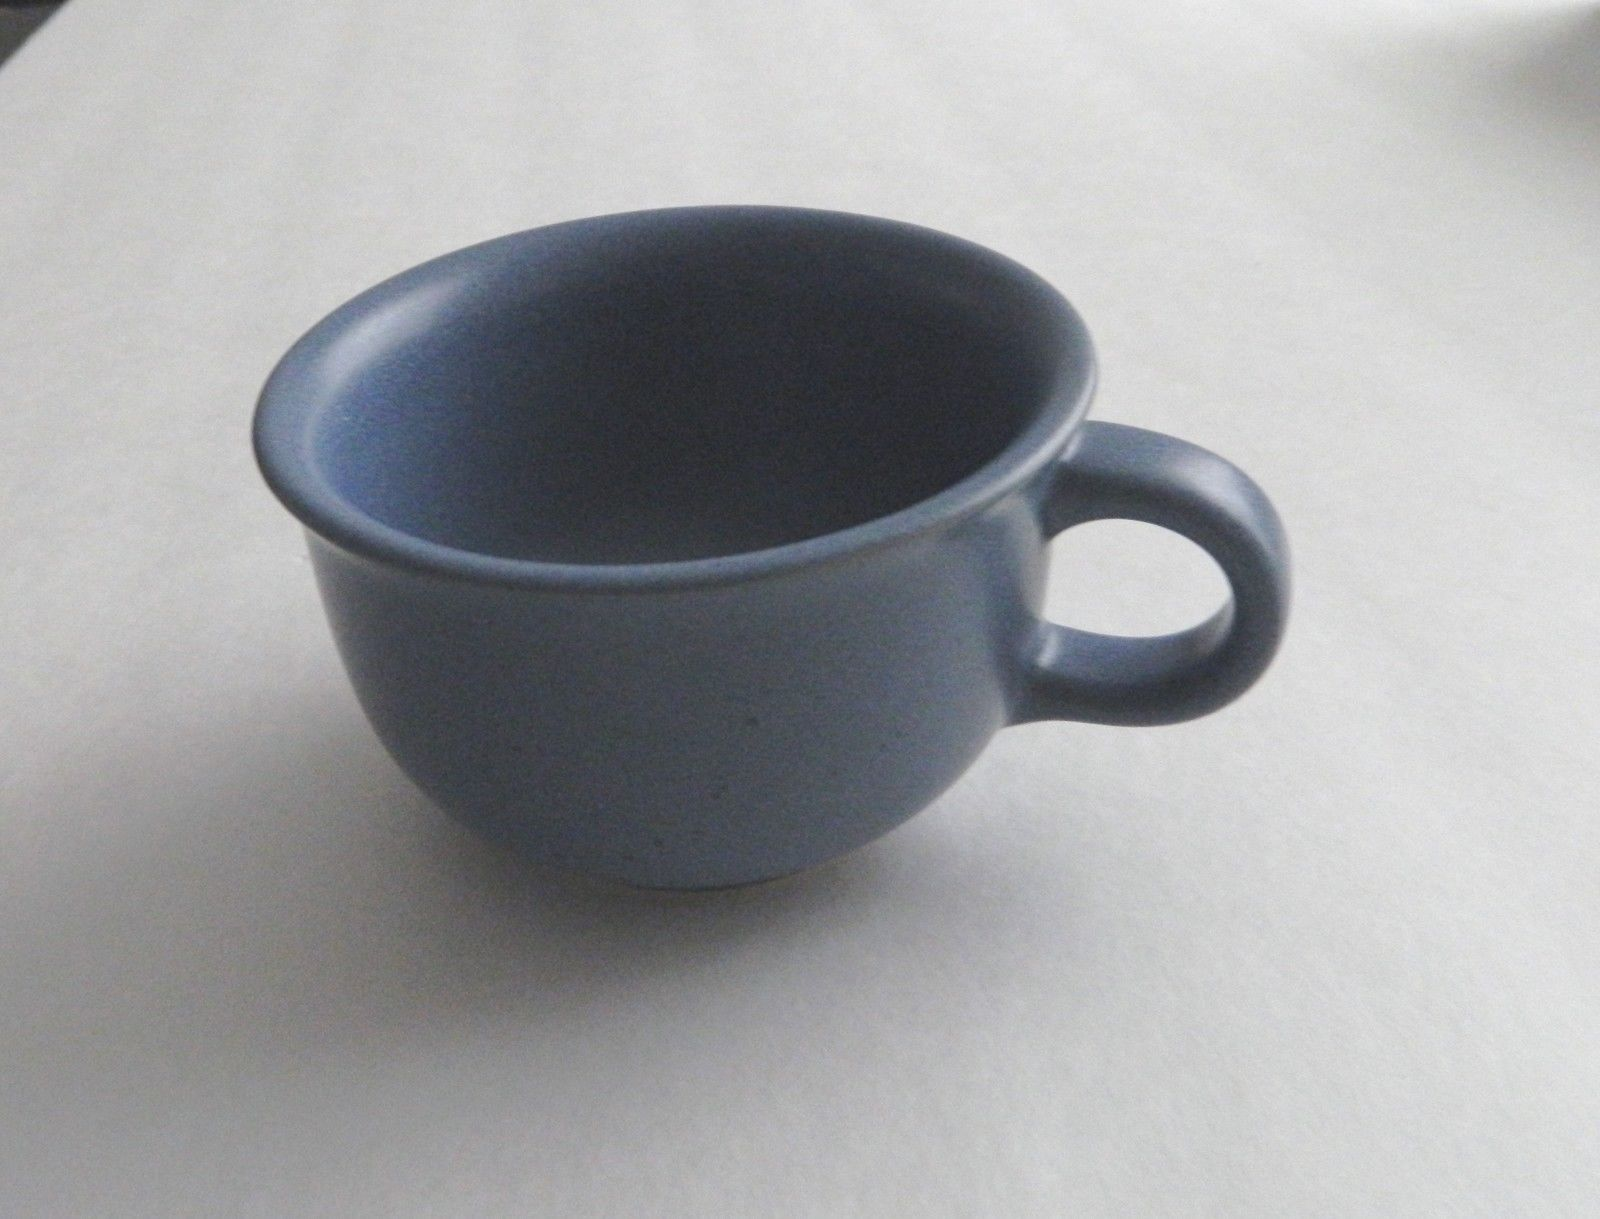 Primary image for Dansk Mesa Blue Coffee Cup made InJapan